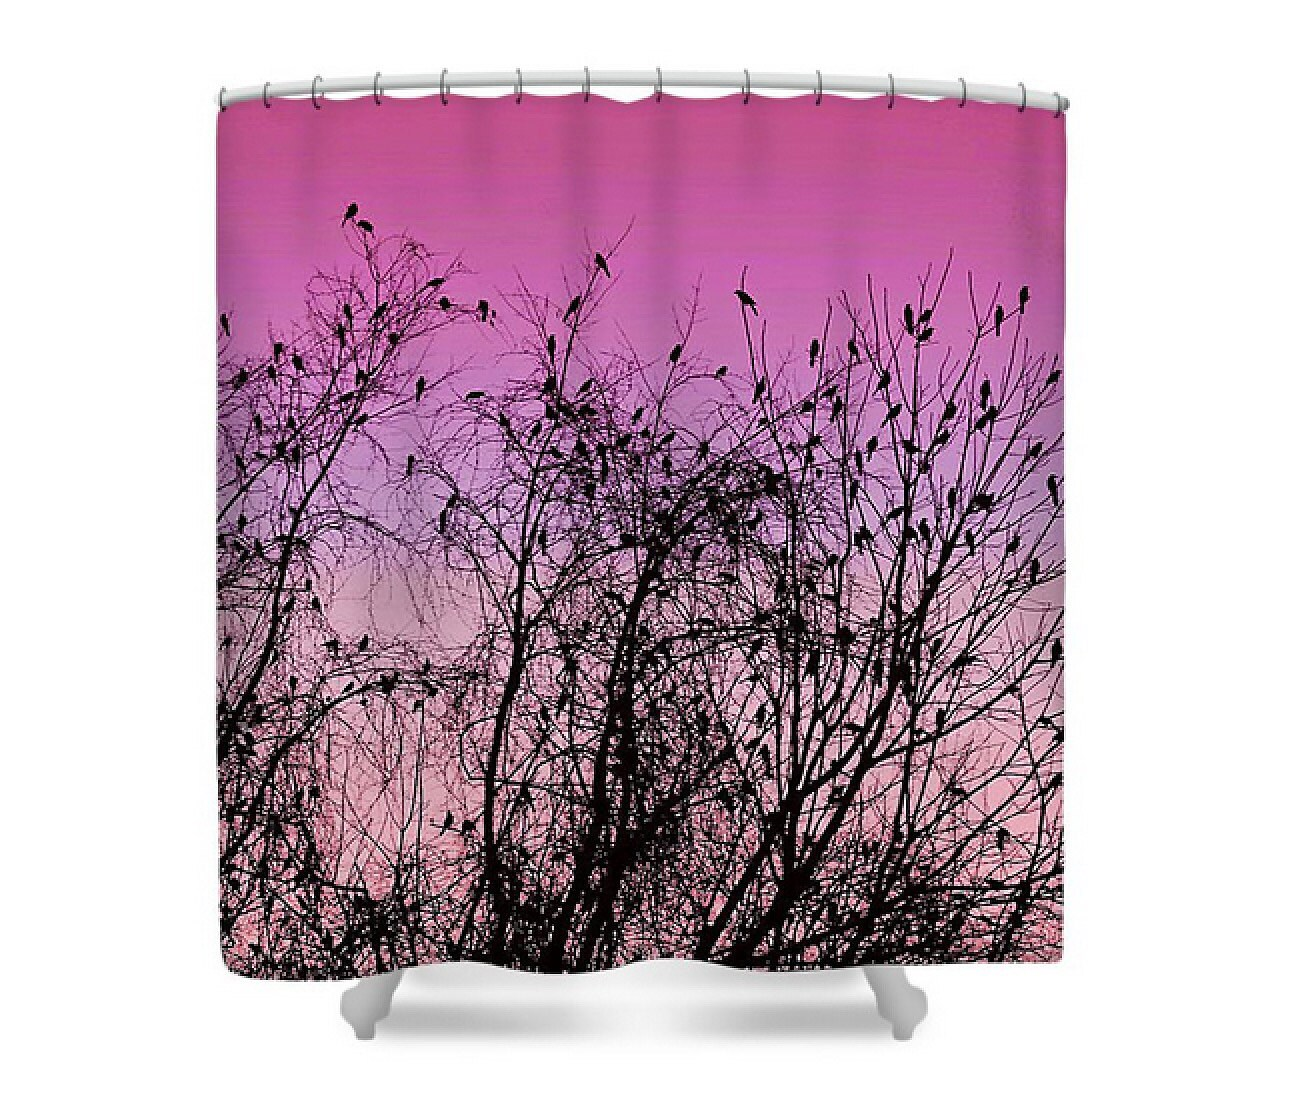 Ombre Sunset Silhouette Fabric Shower Curtain Pink Purple Brown Birds In Trees Bath Decor Autumn Congressional By Susan Maxwell Schmidt